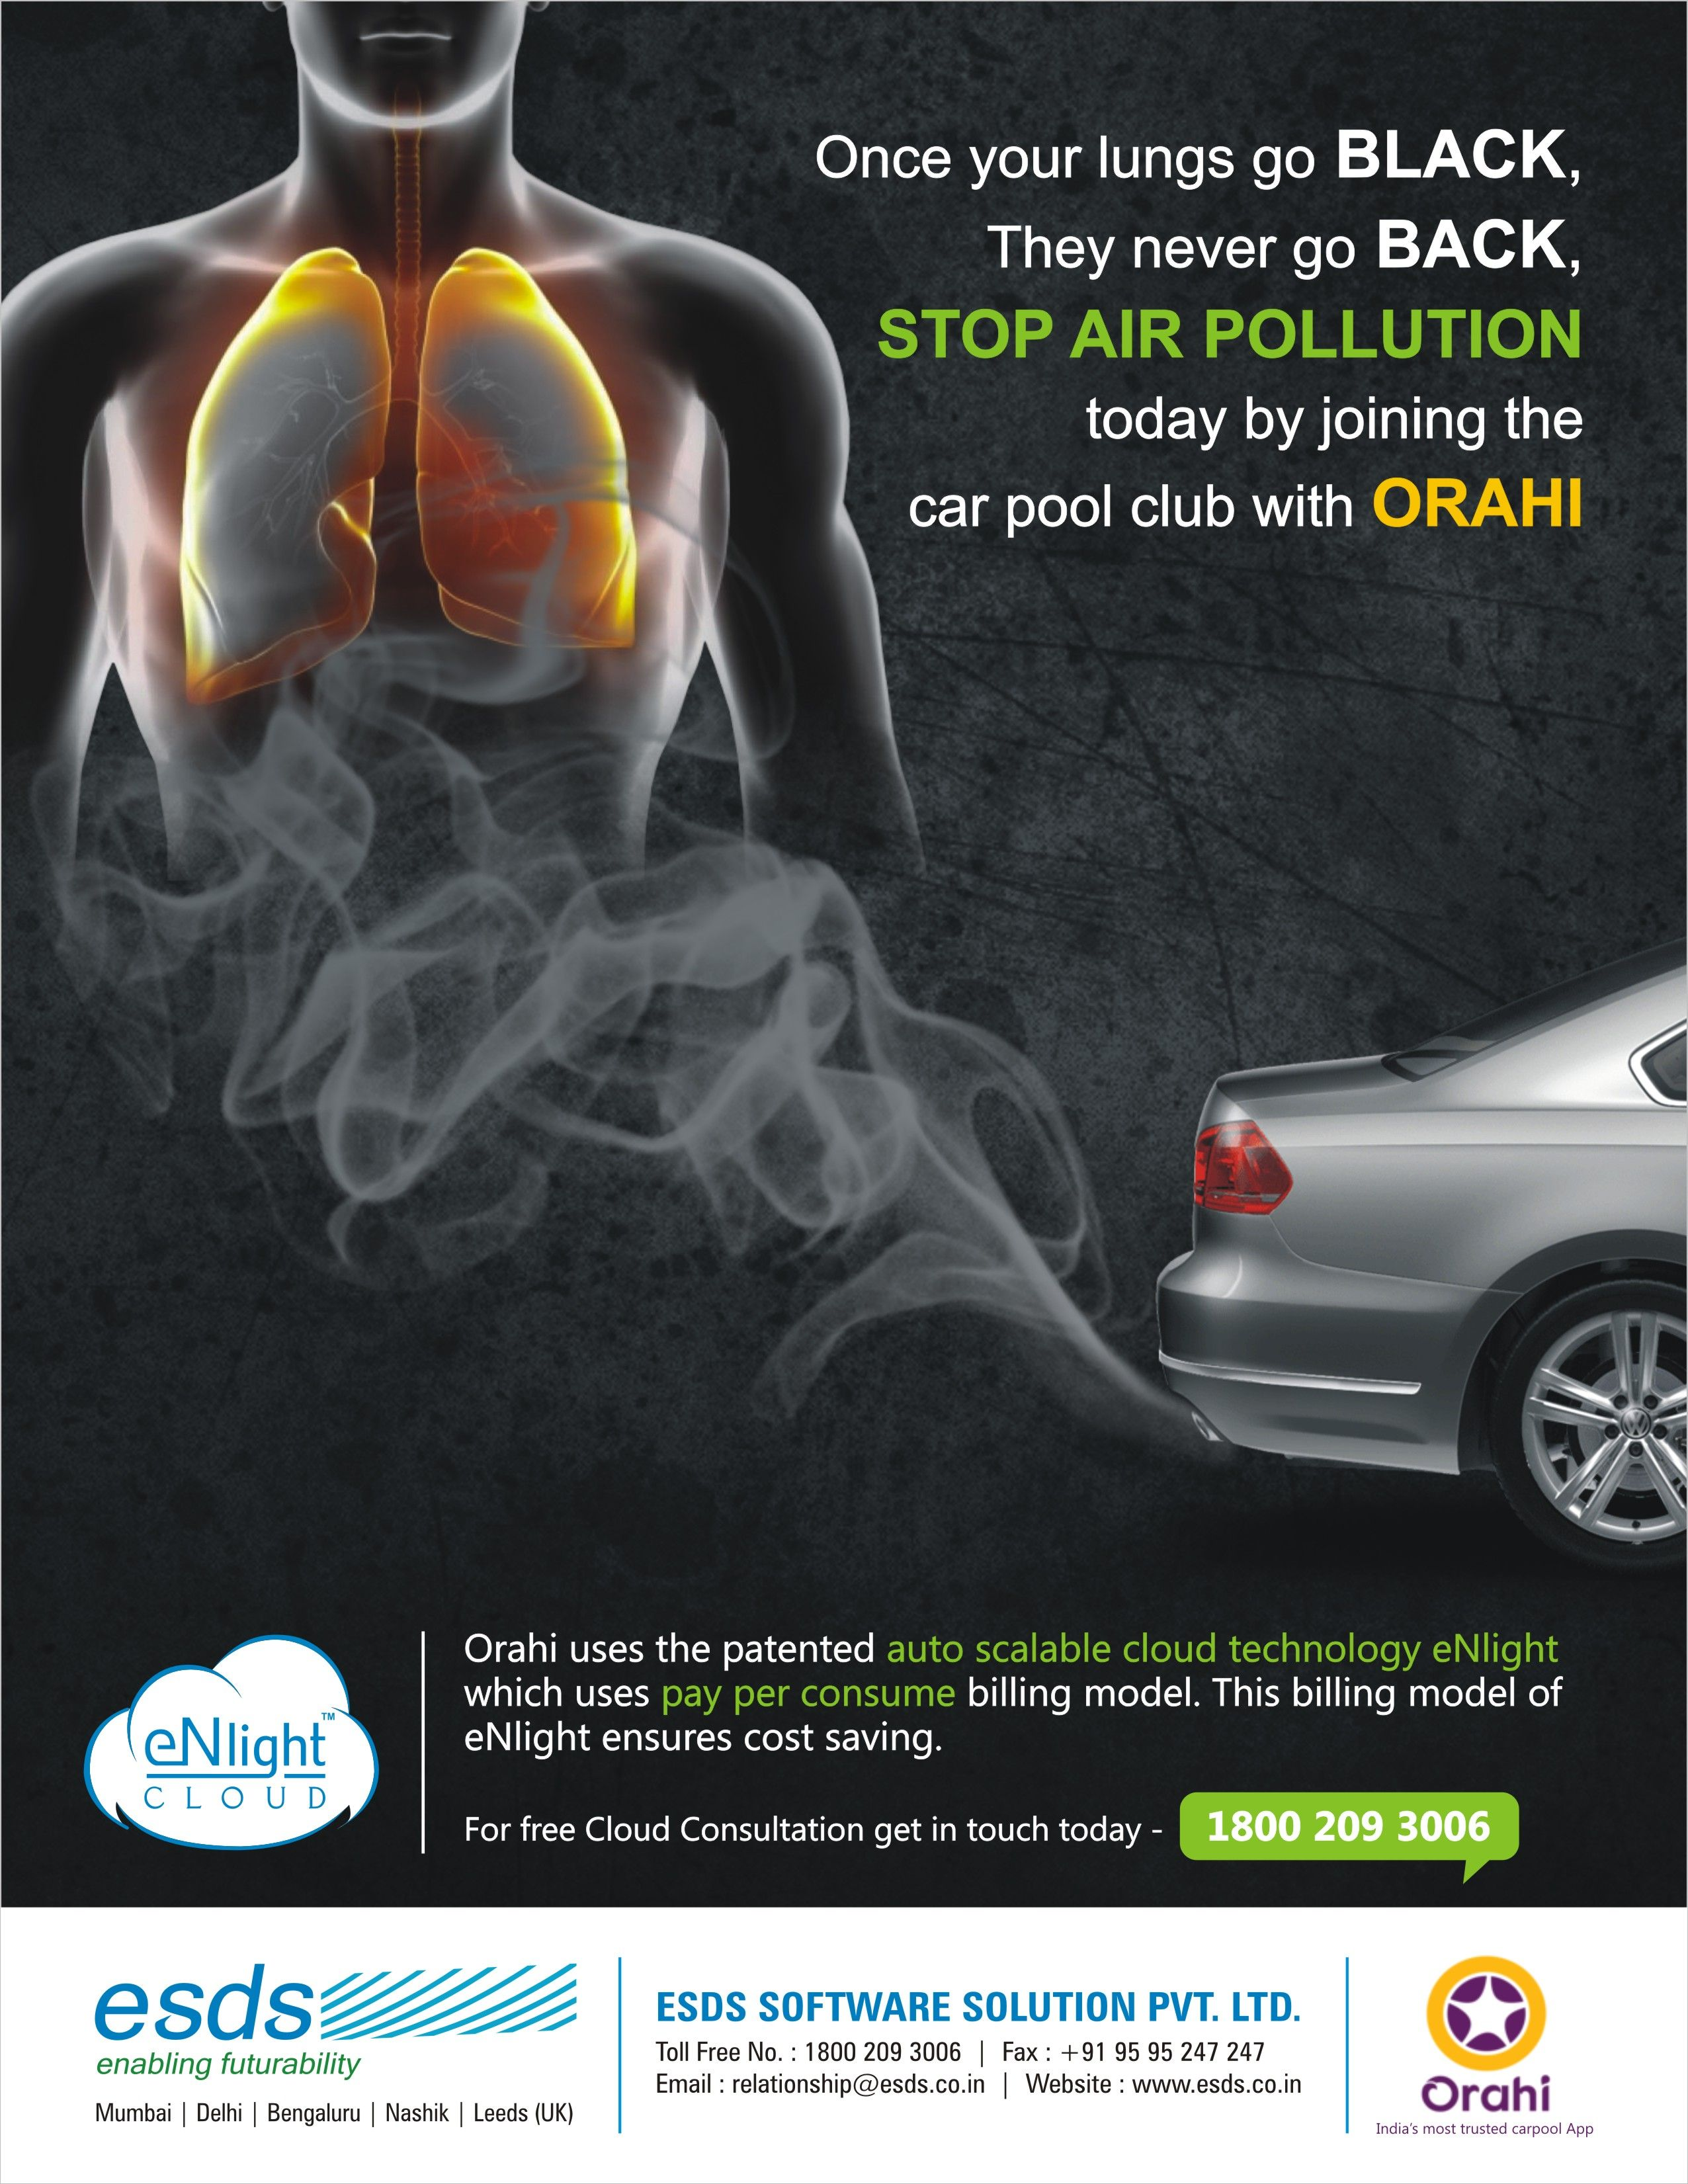 Once your lungs go Black, They never go Back! Stop Air